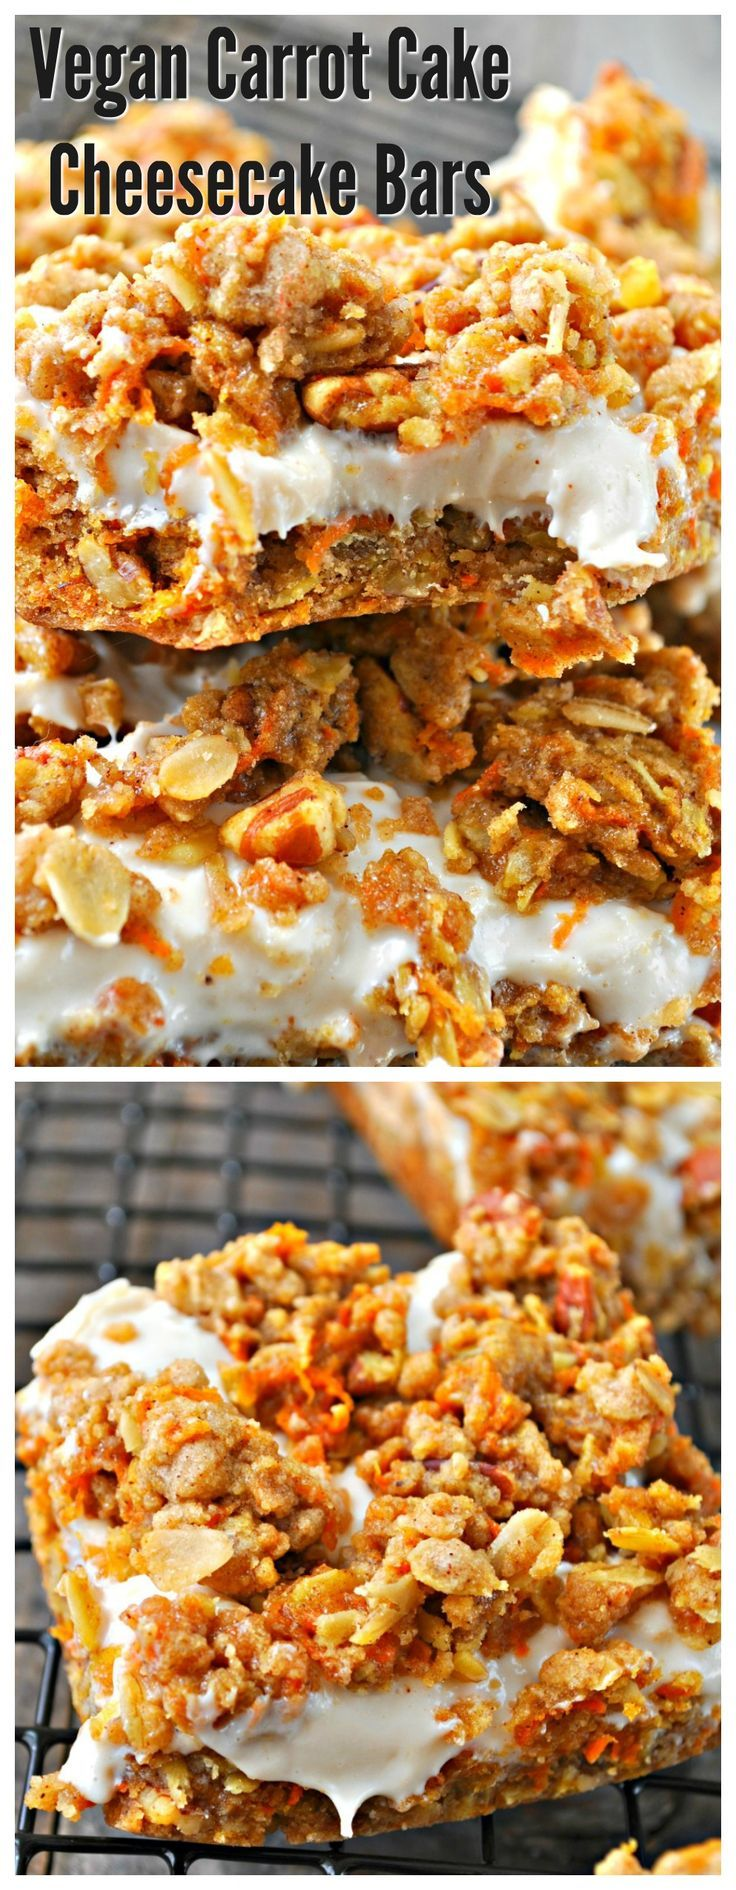 25 Best Ideas About Vegan Carrot Cakes On Pinterest